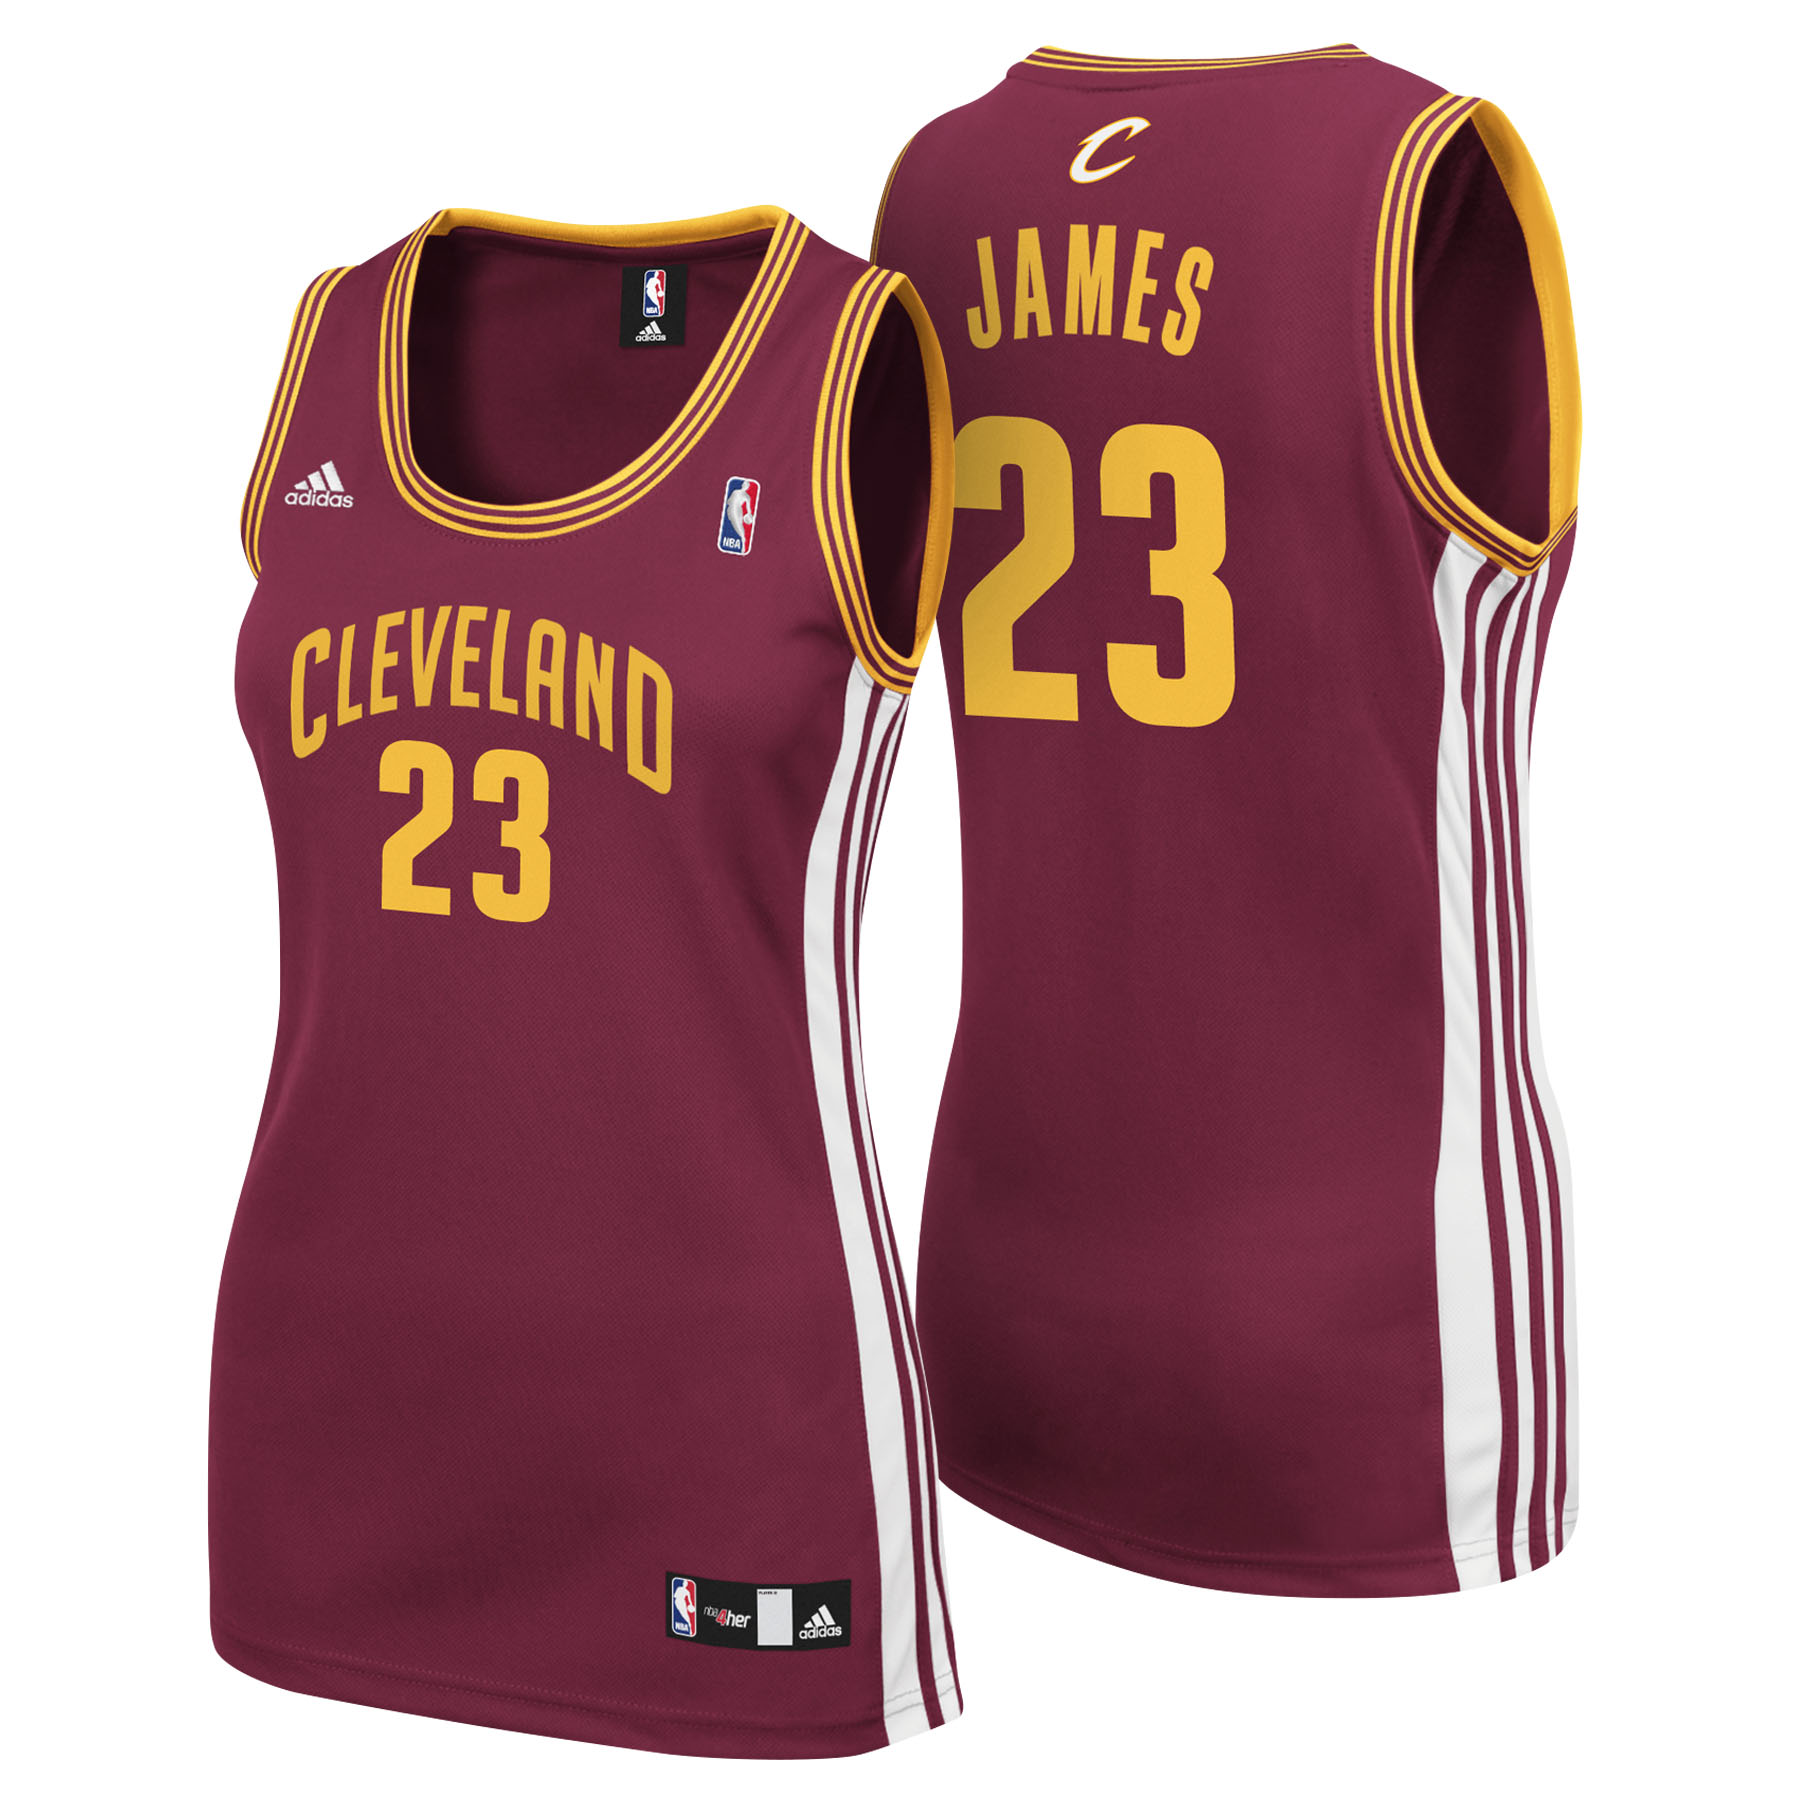 Cleveland Cavaliers Road Replica Jersey - Lebron James - Womens